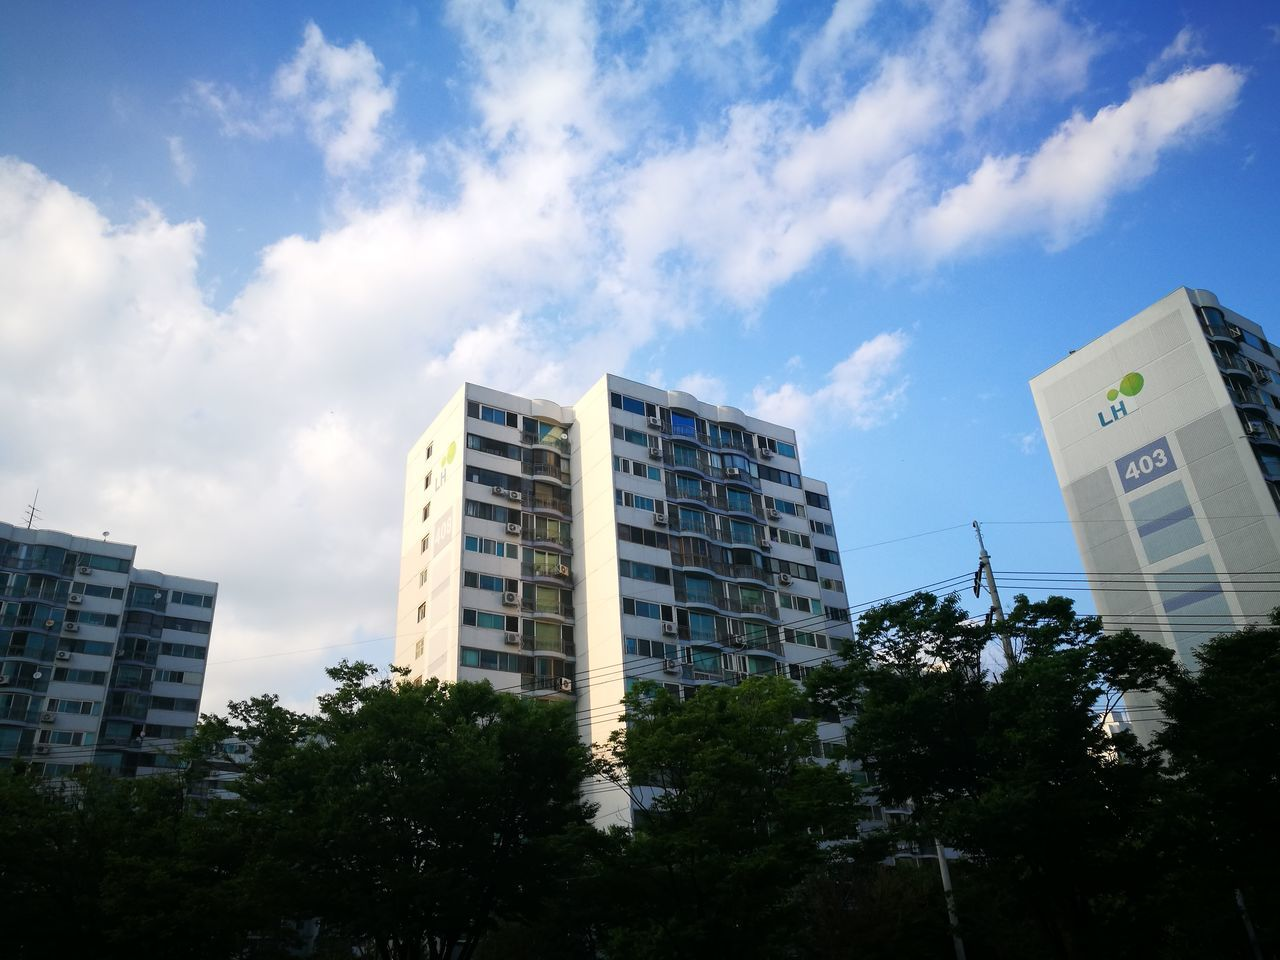 tree, low angle view, architecture, sky, growth, day, building exterior, no people, outdoors, modern, city